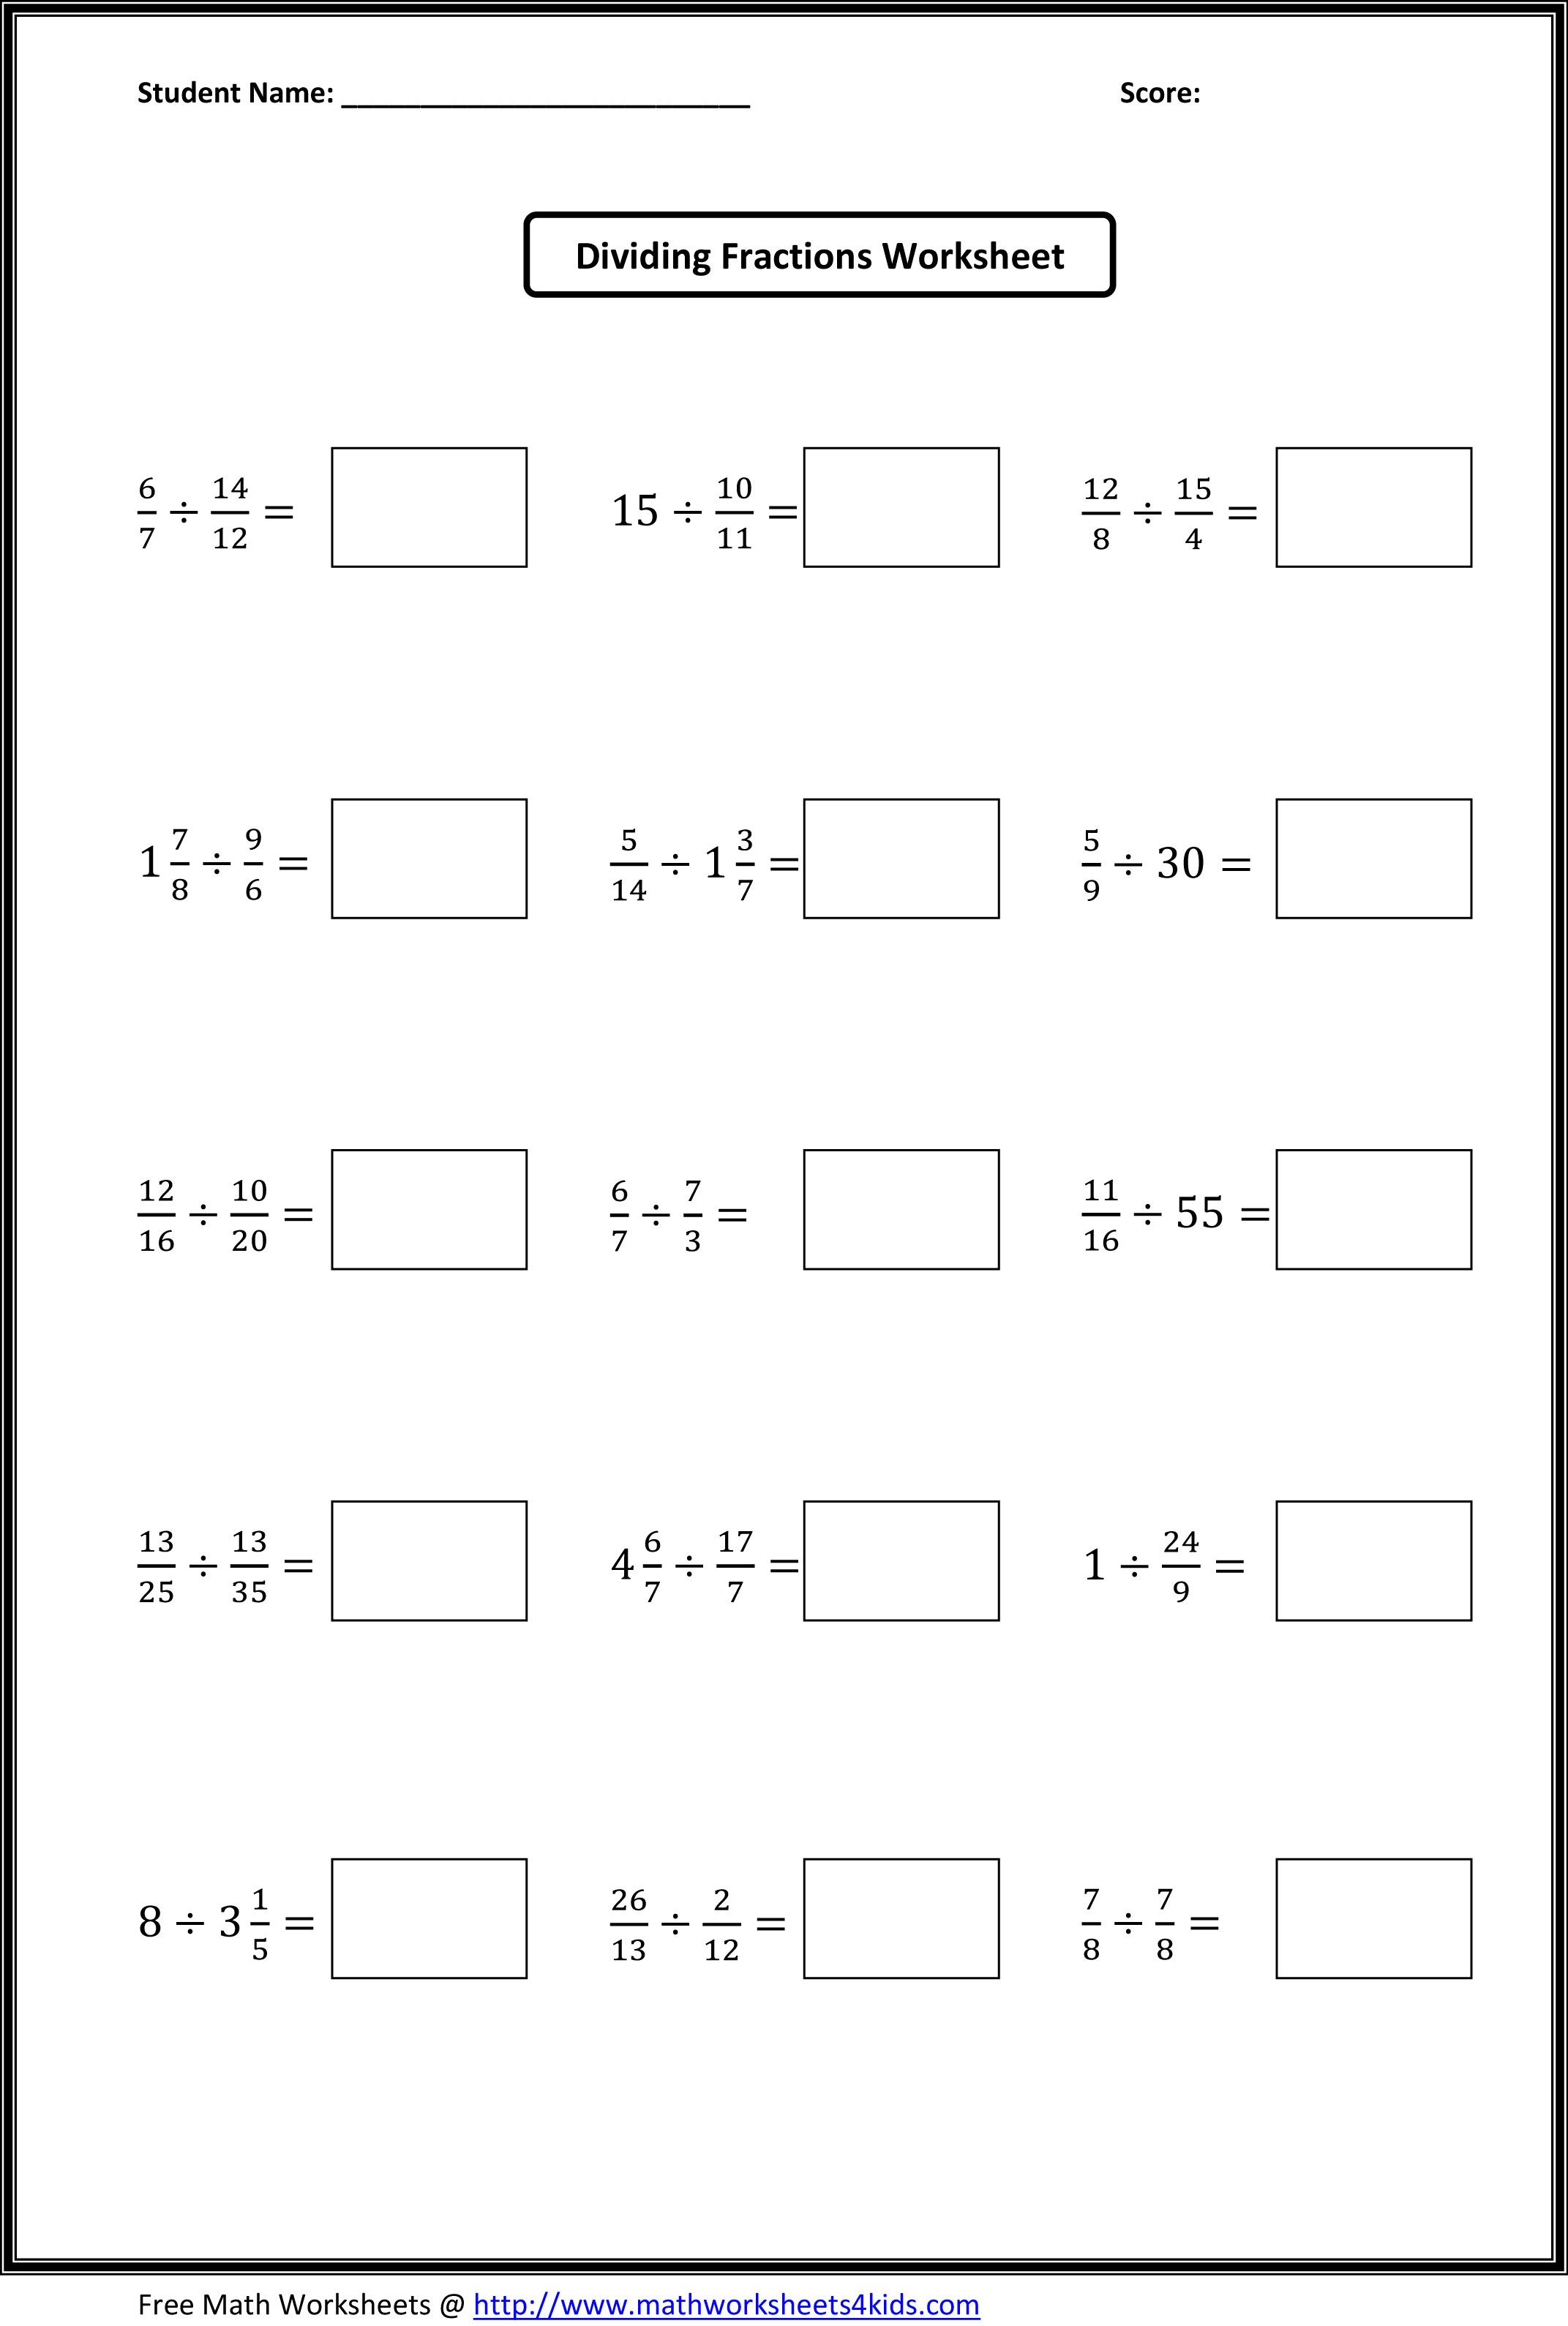 dividing fractions worksheets - Adding Subtracting Multiplying And Dividing Fractions Worksheet